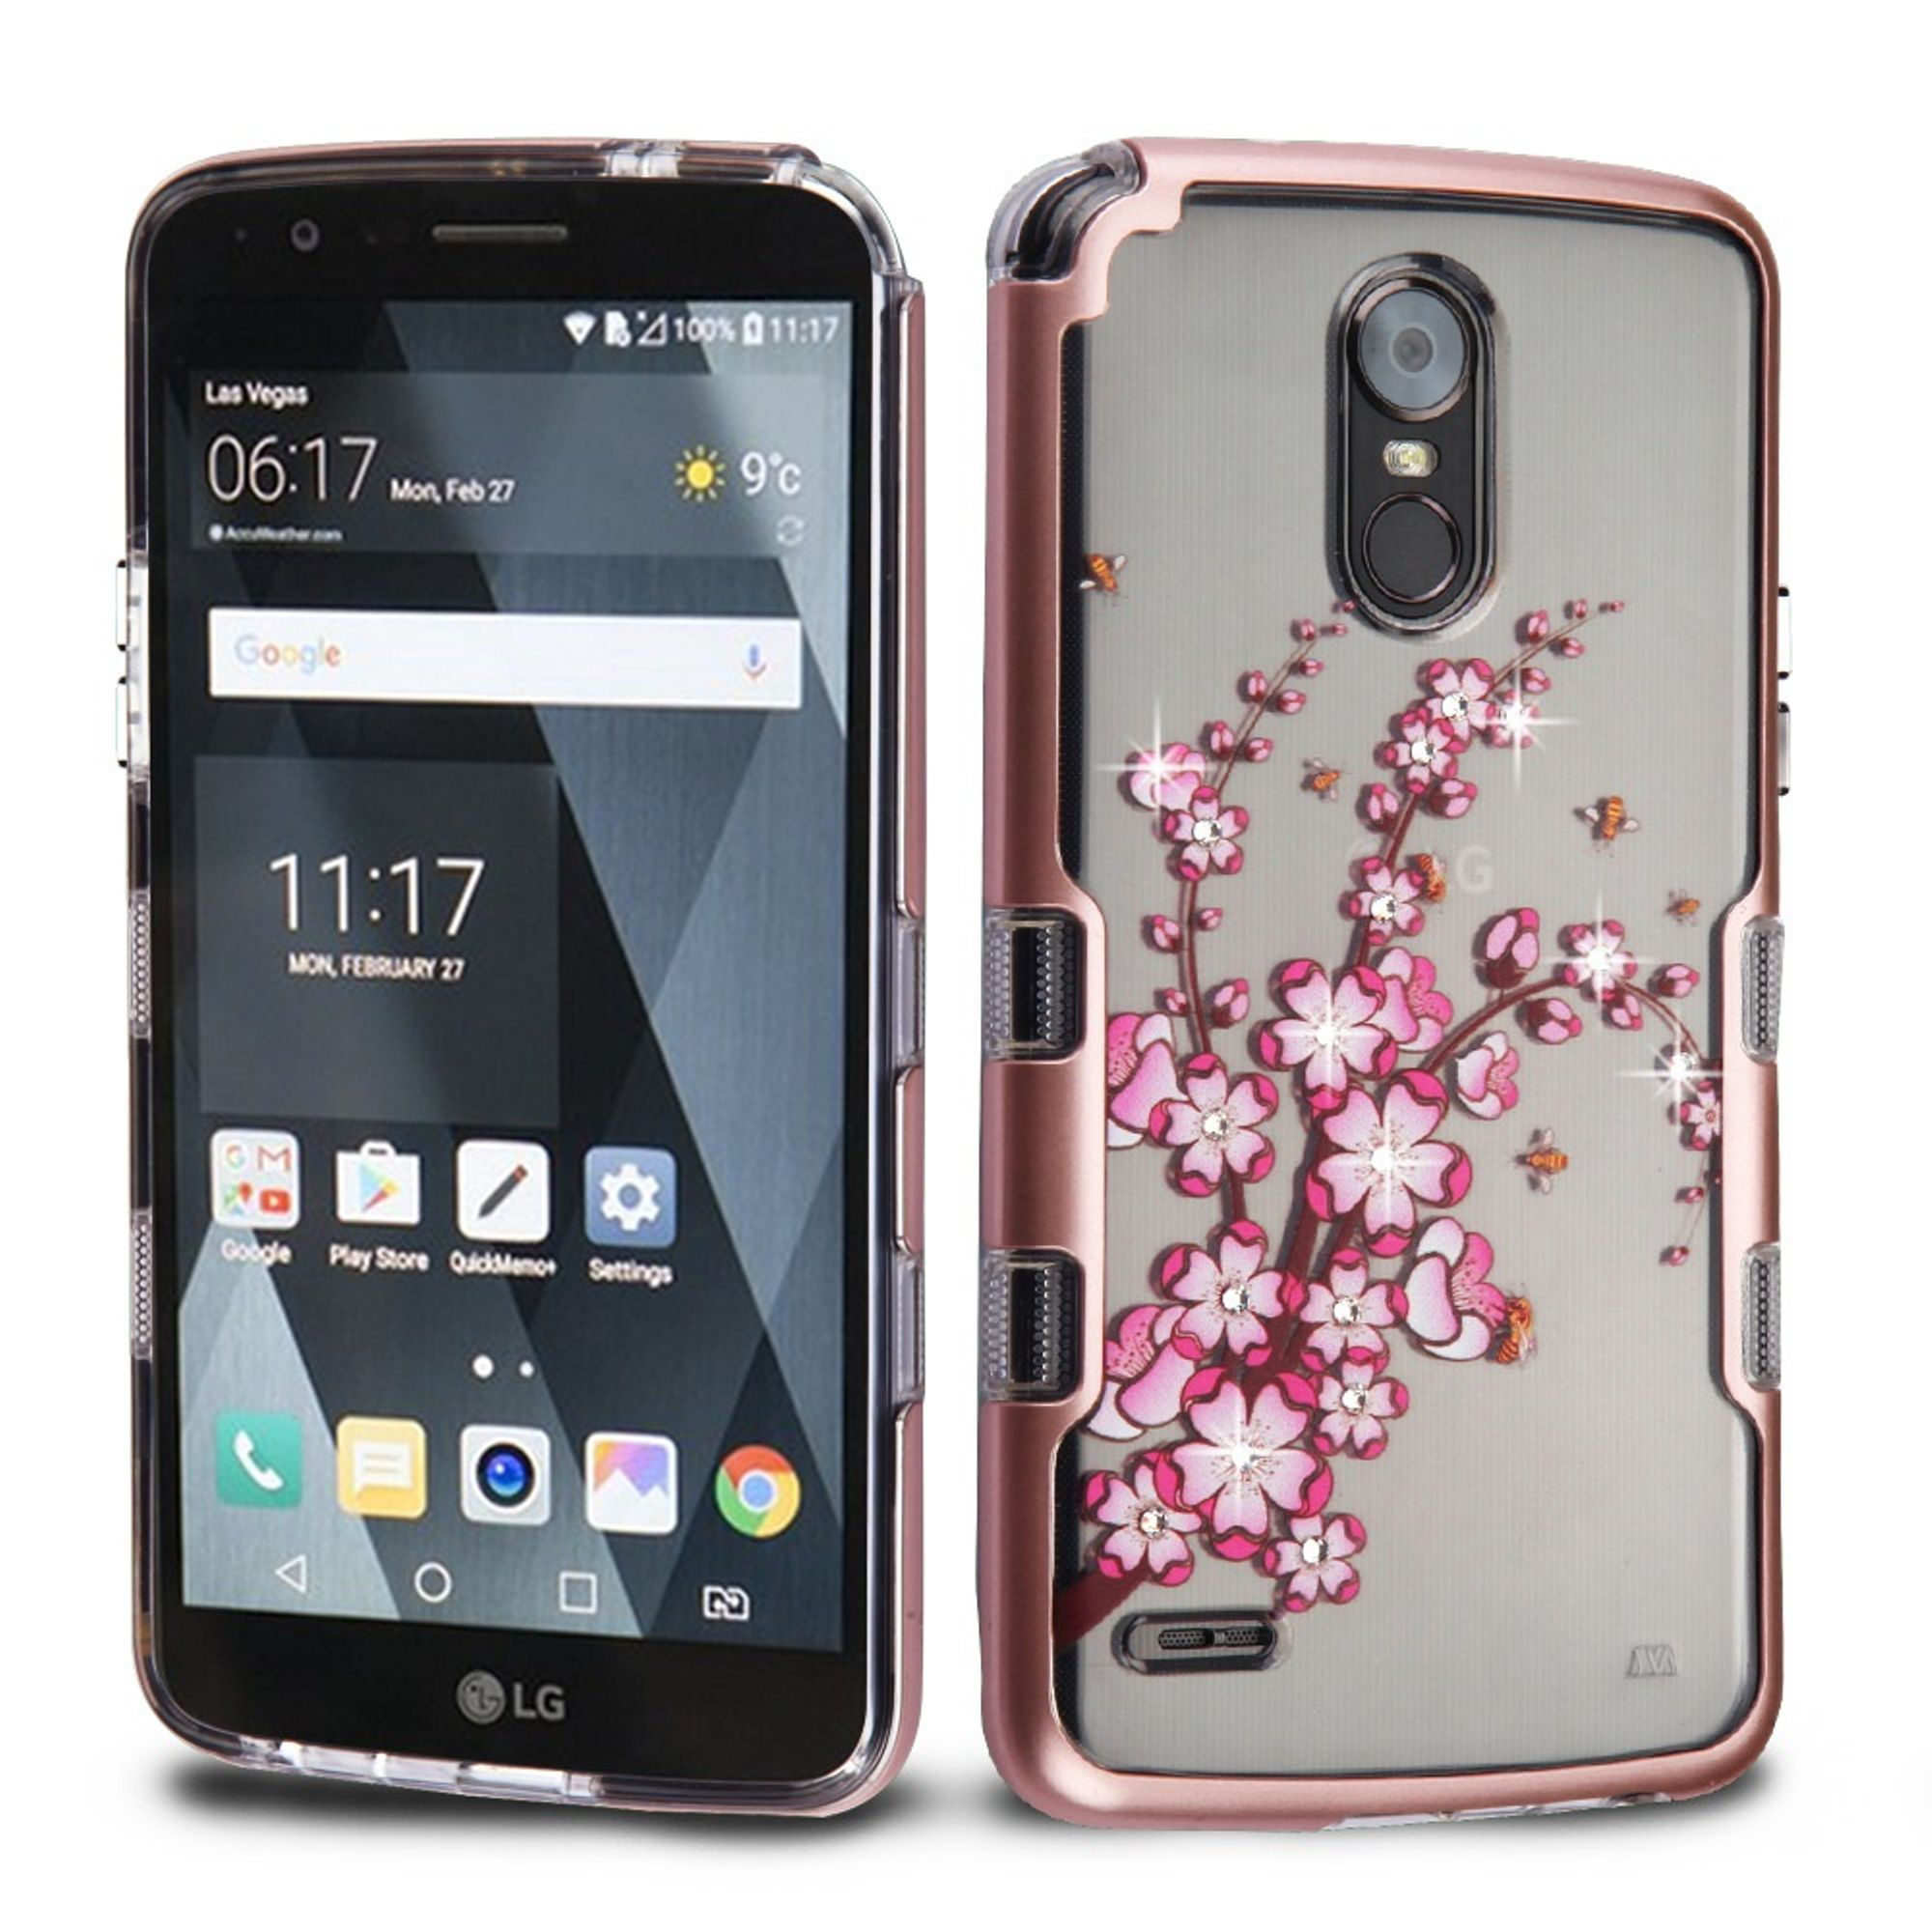 LG Stylo 3 case, LG Stylo 3 Plus Phone Case, by Insten Hybrid Hard Plastic/Soft TPU Rubber Case for LG Stylo 3 LS777 / LG Stylus 3 / LG Stylo 3 Plus / LG K10 Pro - Rose Gold/Clear